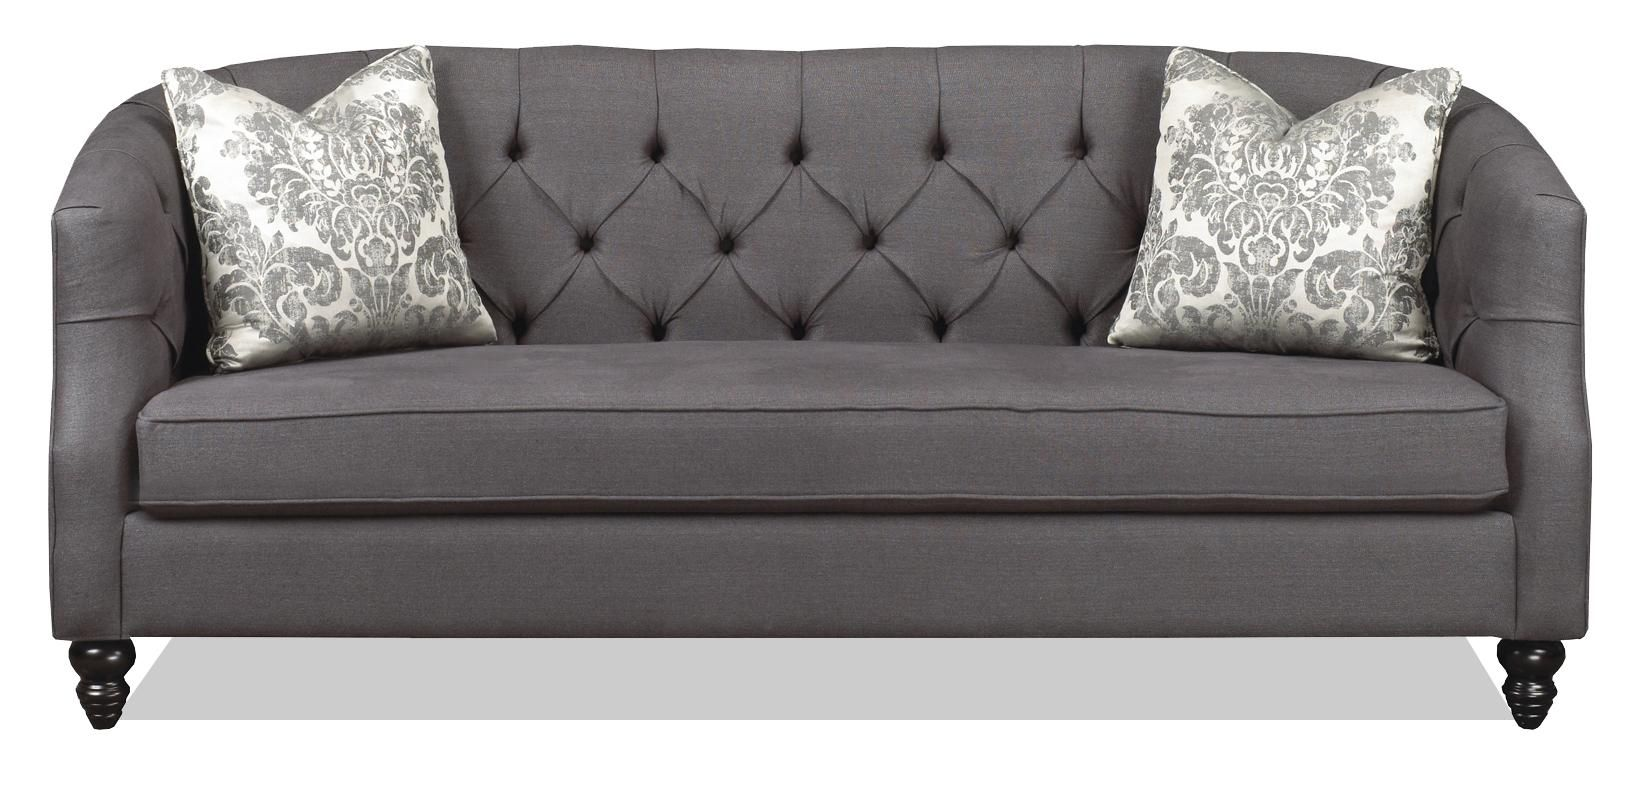 We Have The Chair To Match At Reliable Home Furniture The Sofa